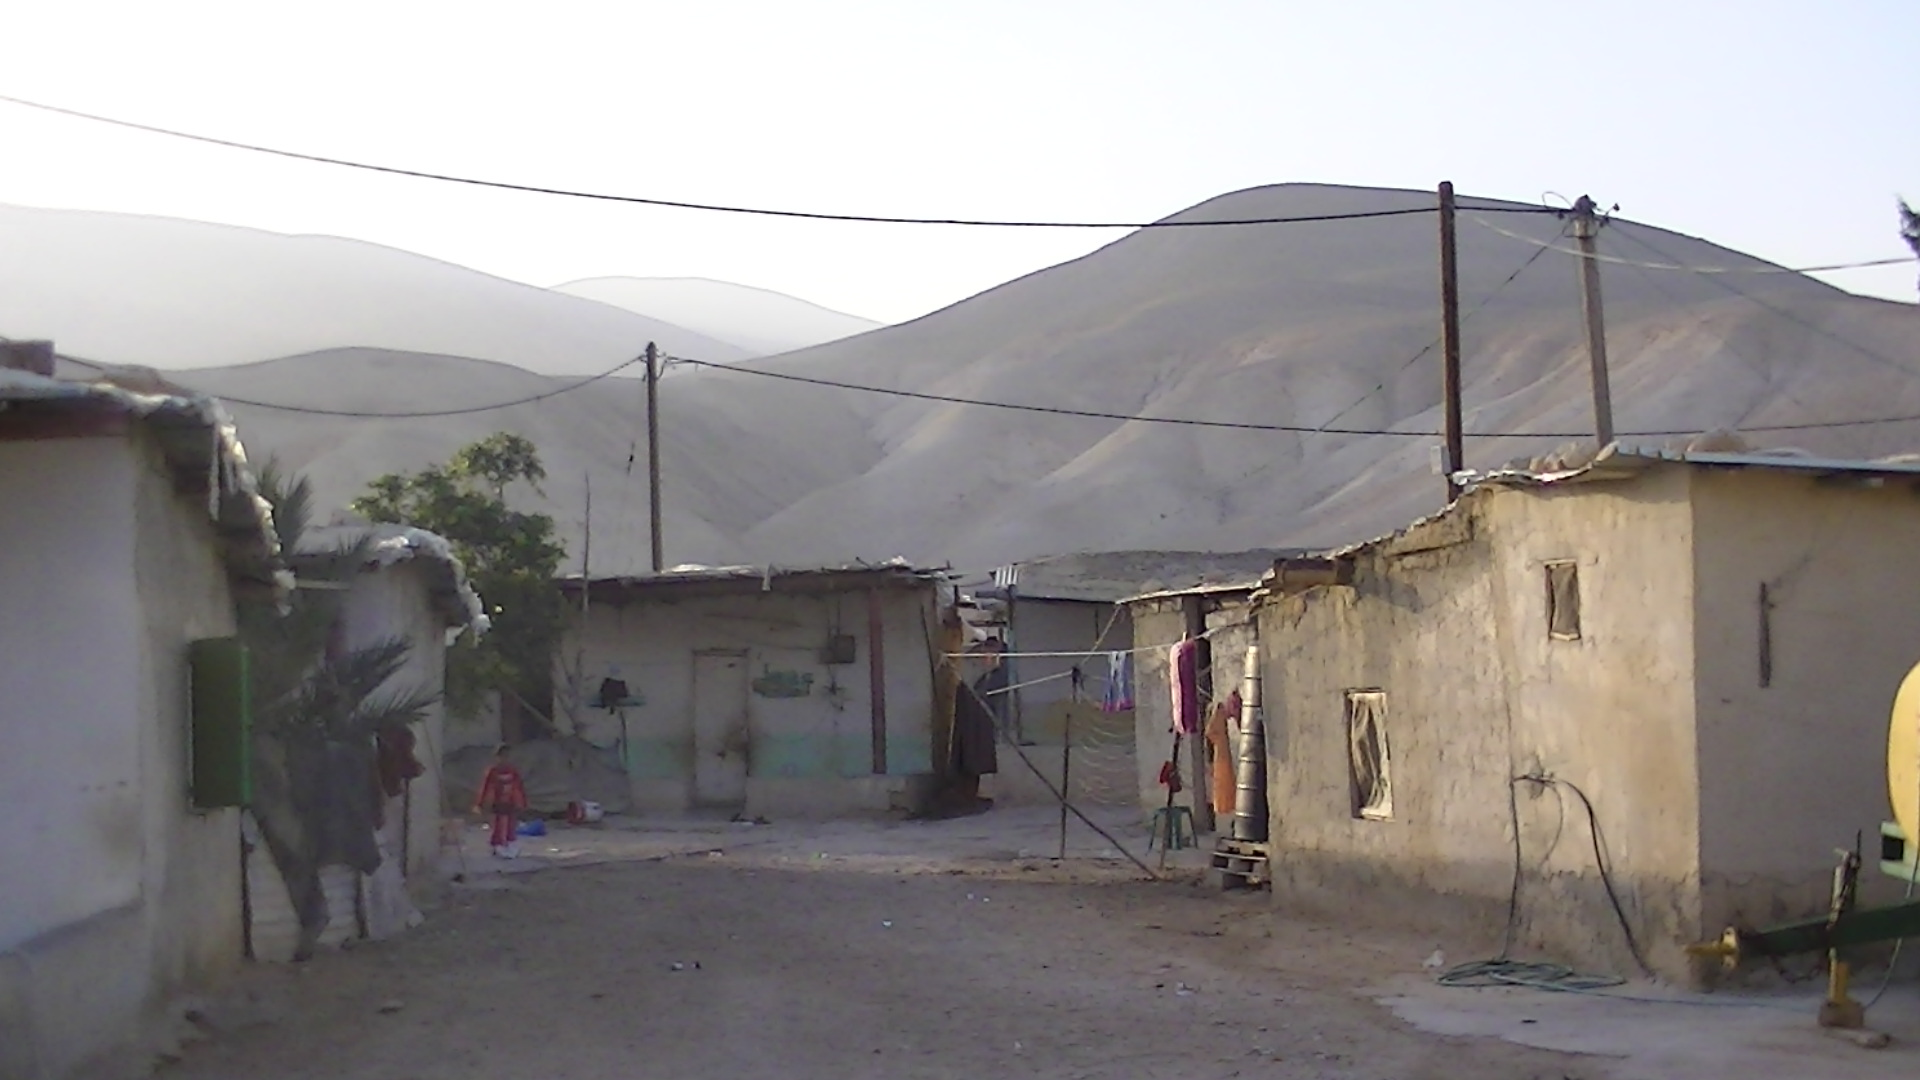 Palestinian homes in the village of Fasayil